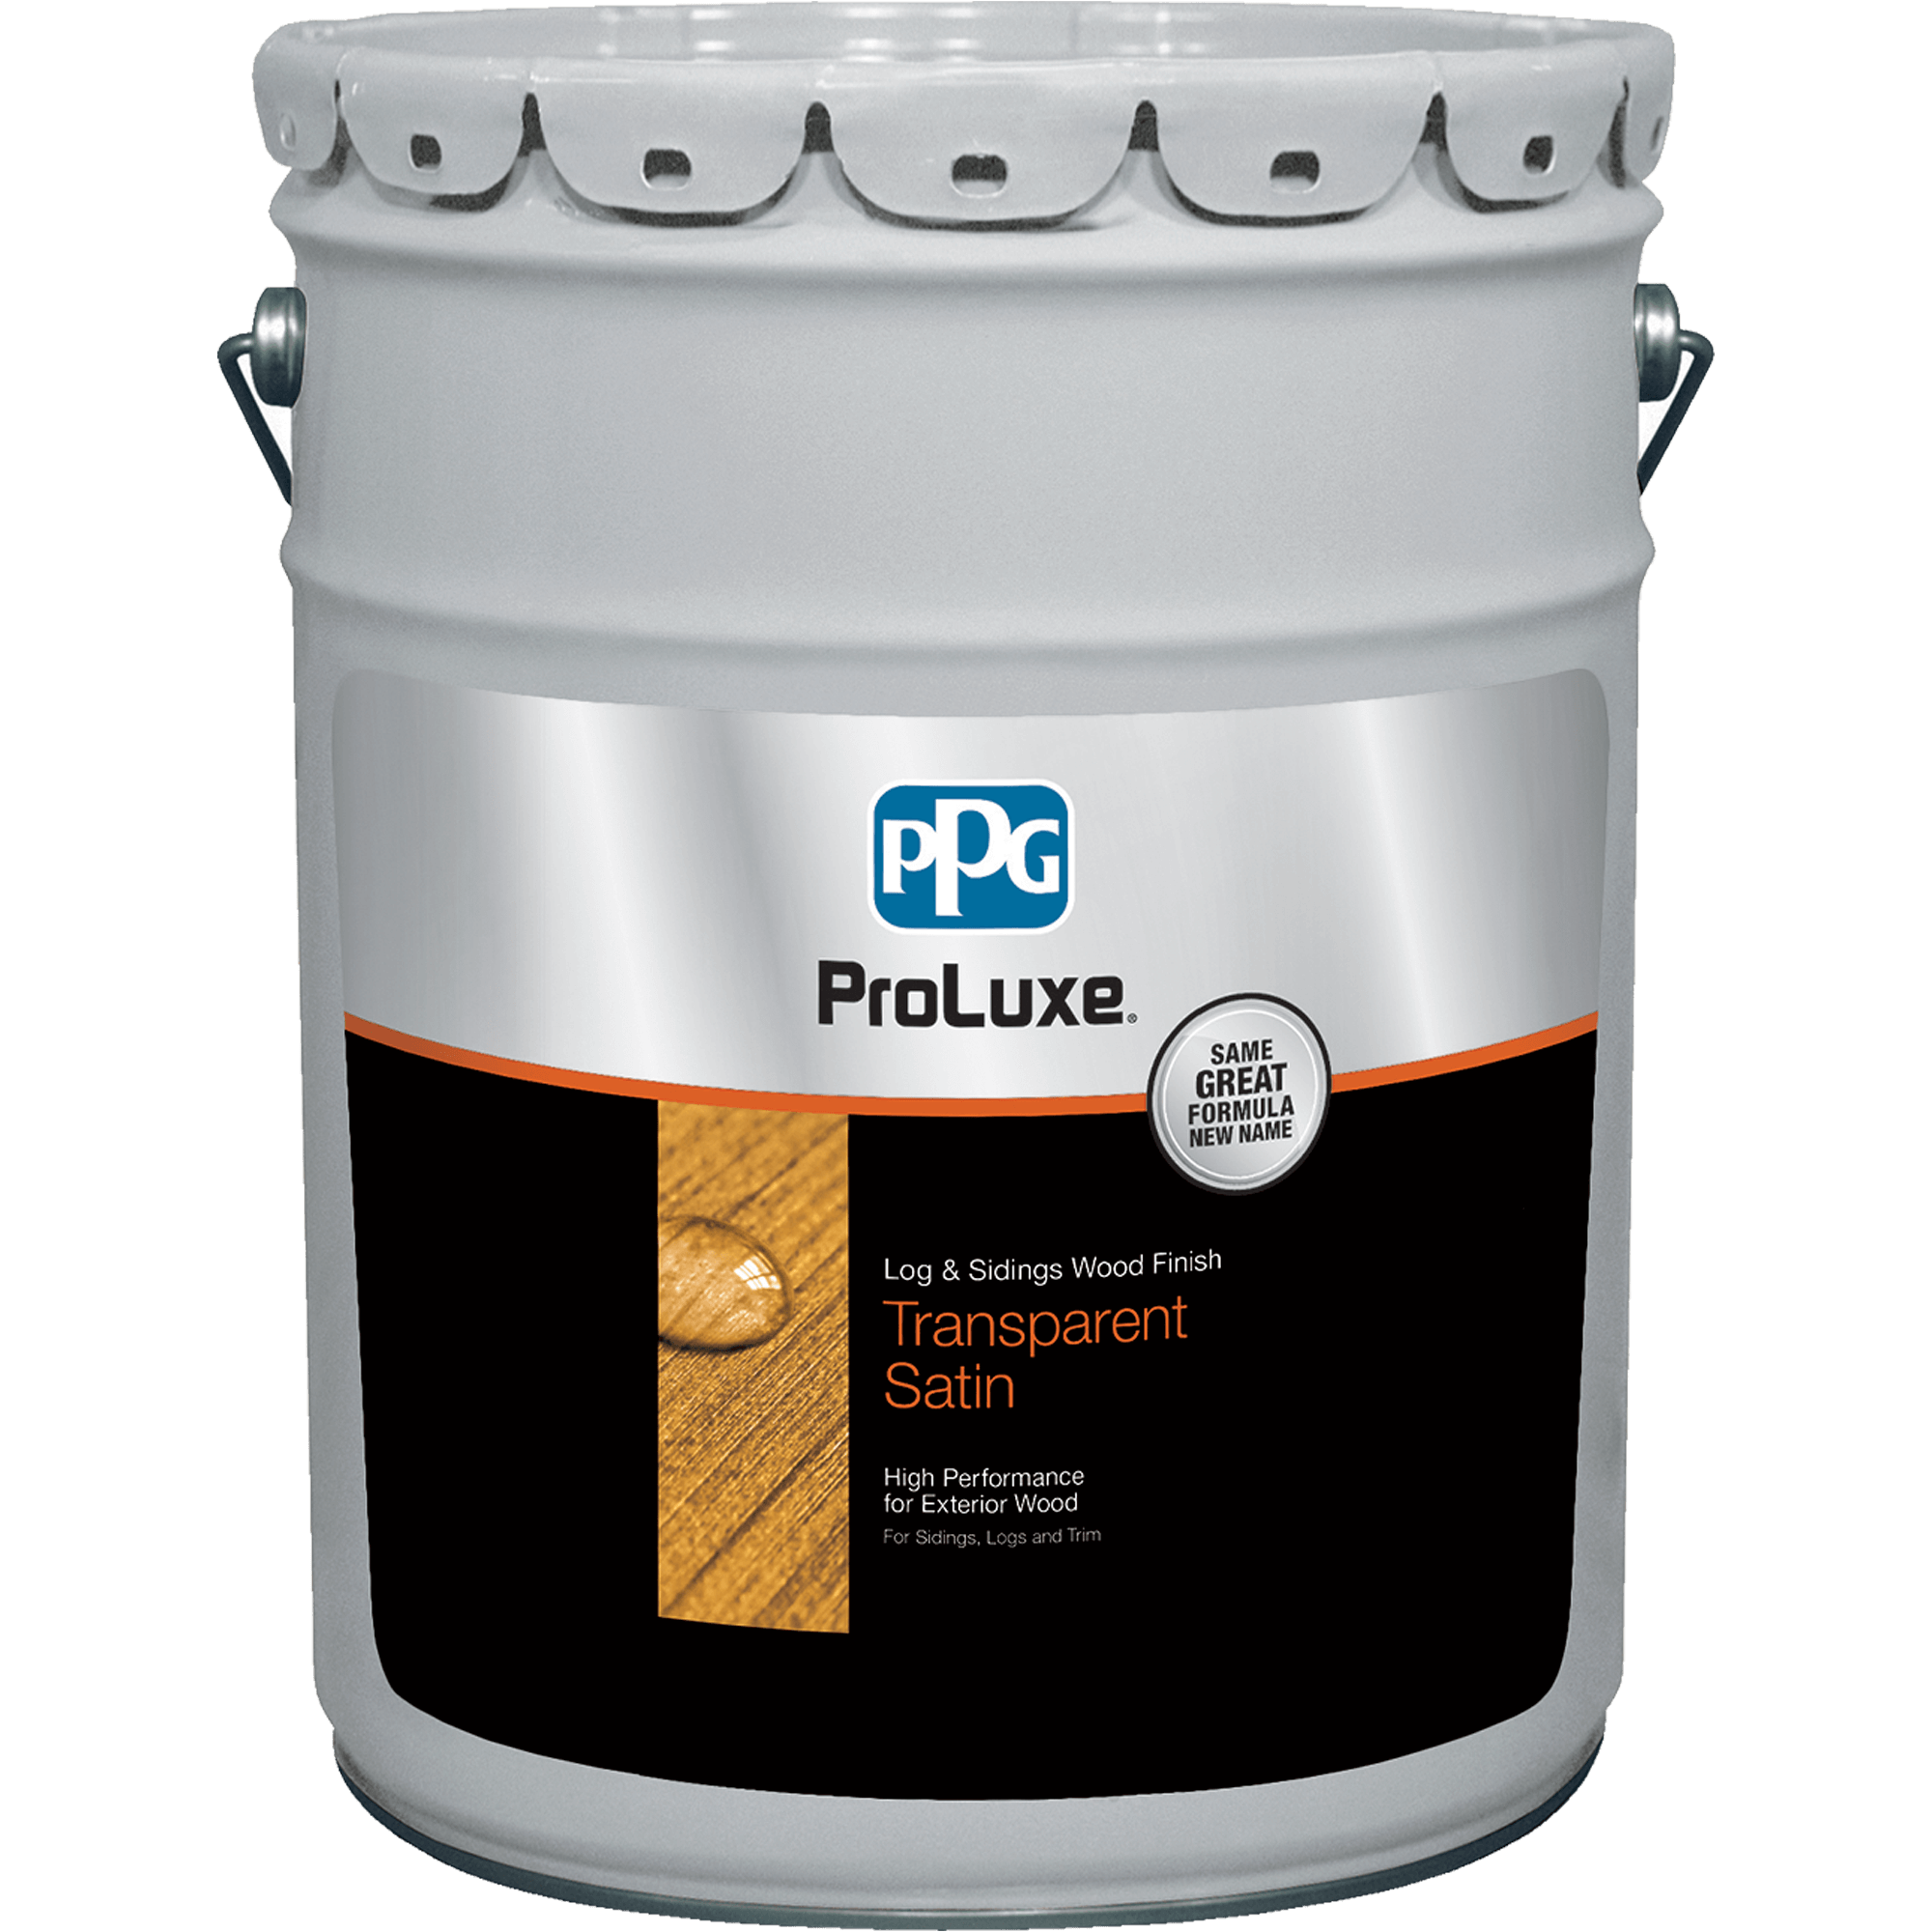 PROLUXE<sup>®</sup> Log & Siding Wood Finish 5 gallon